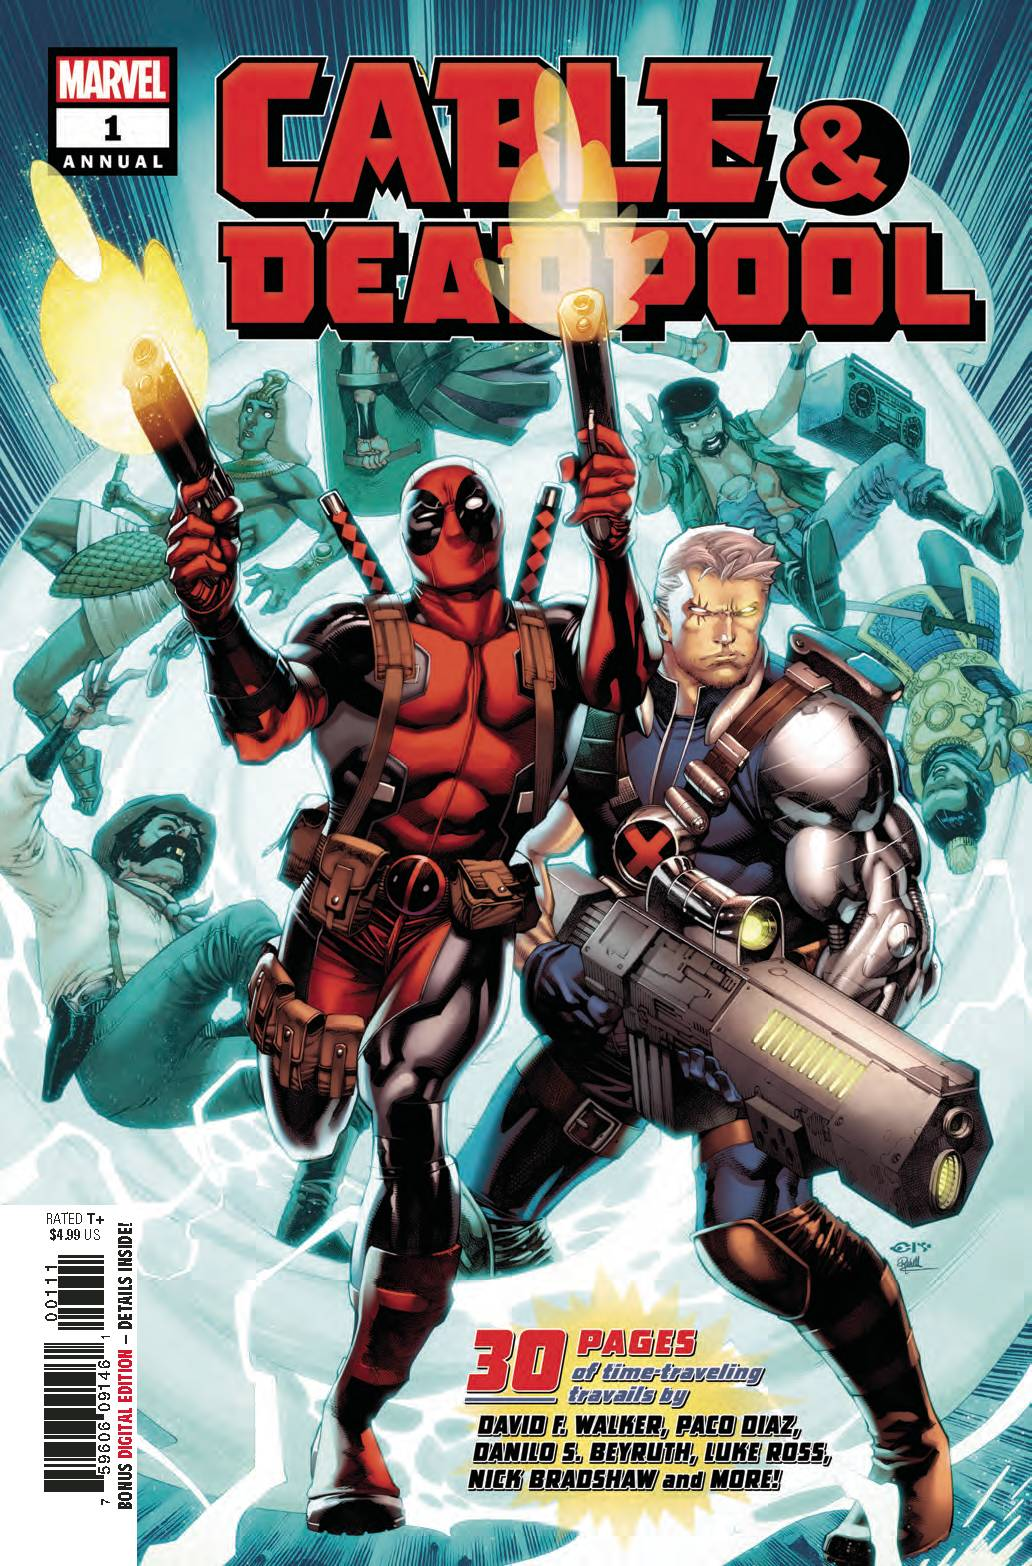 CABLE DEADPOOL ANNUAL #1